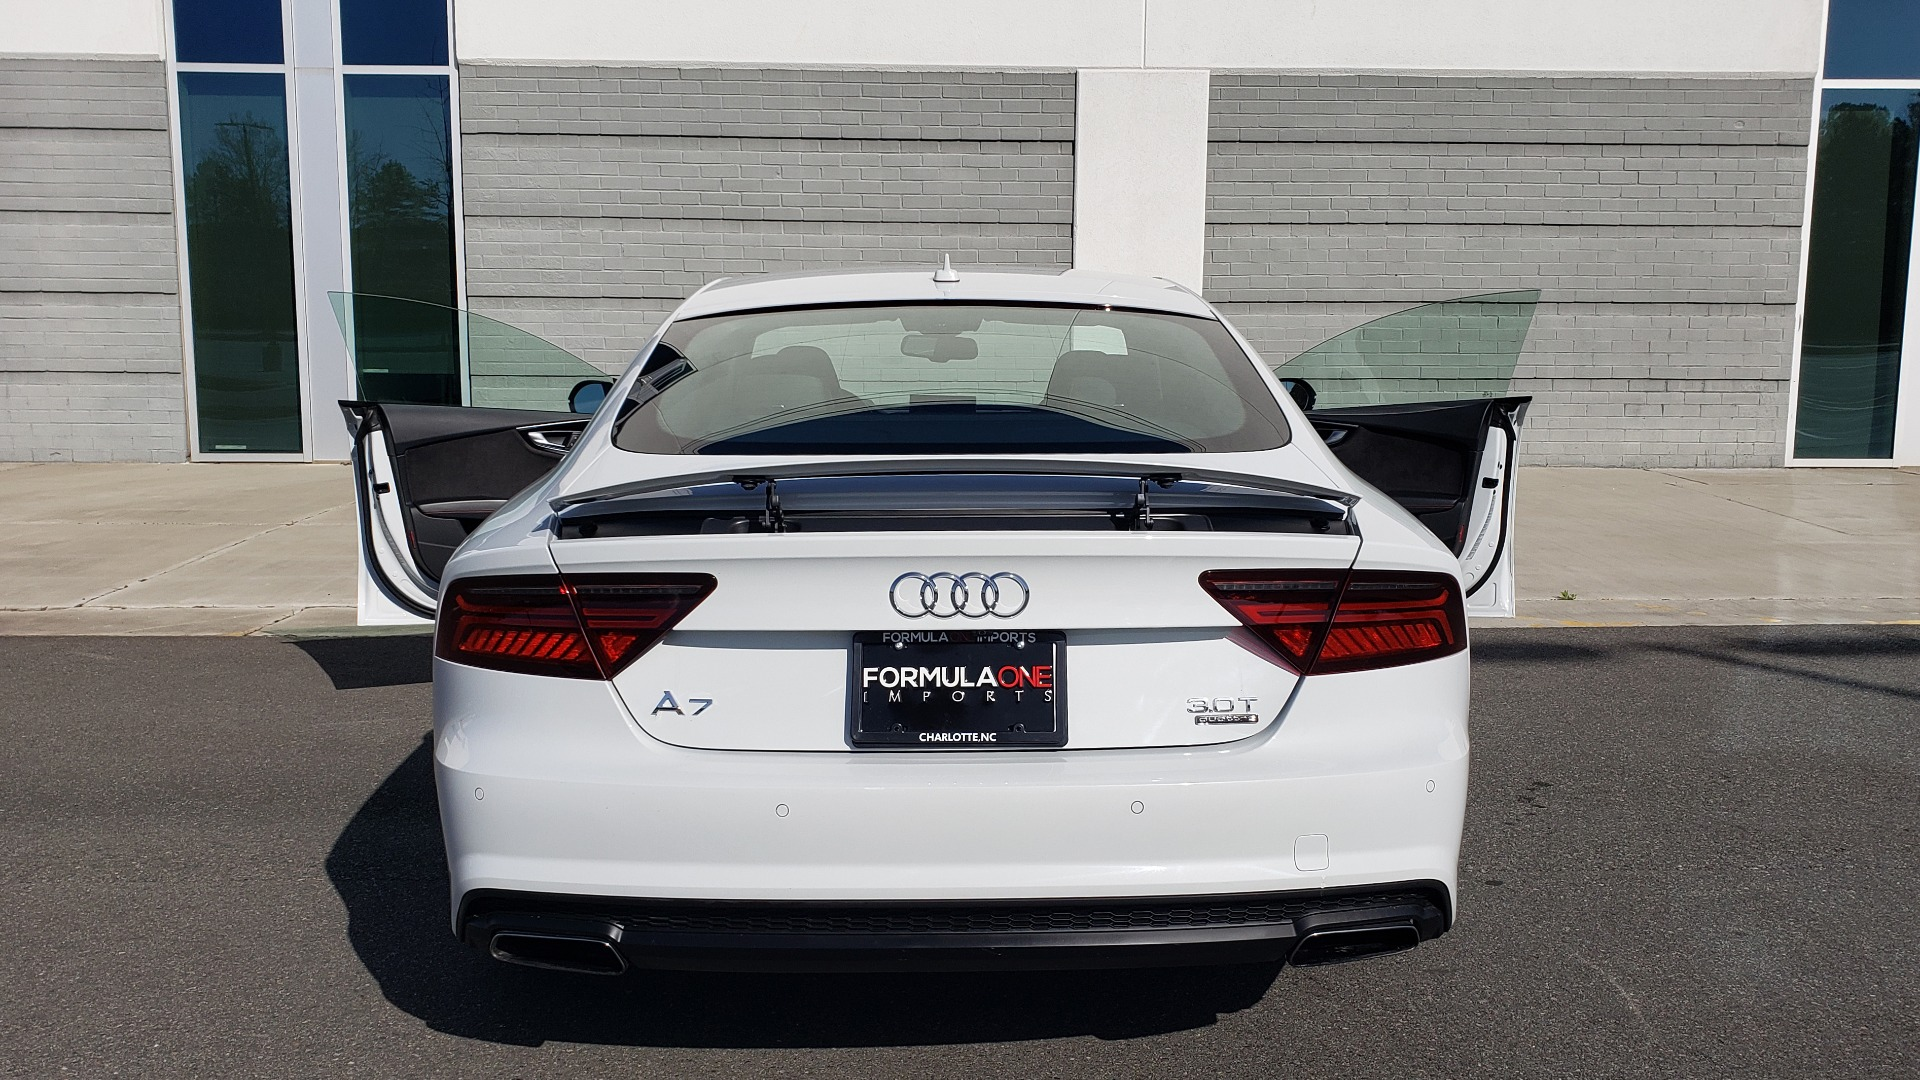 Used 2017 Audi A7 COMPETITION PRESTIGE 3.0T / NAV / DRVR ASST / ADAPT CRUISE for sale $41,995 at Formula Imports in Charlotte NC 28227 29